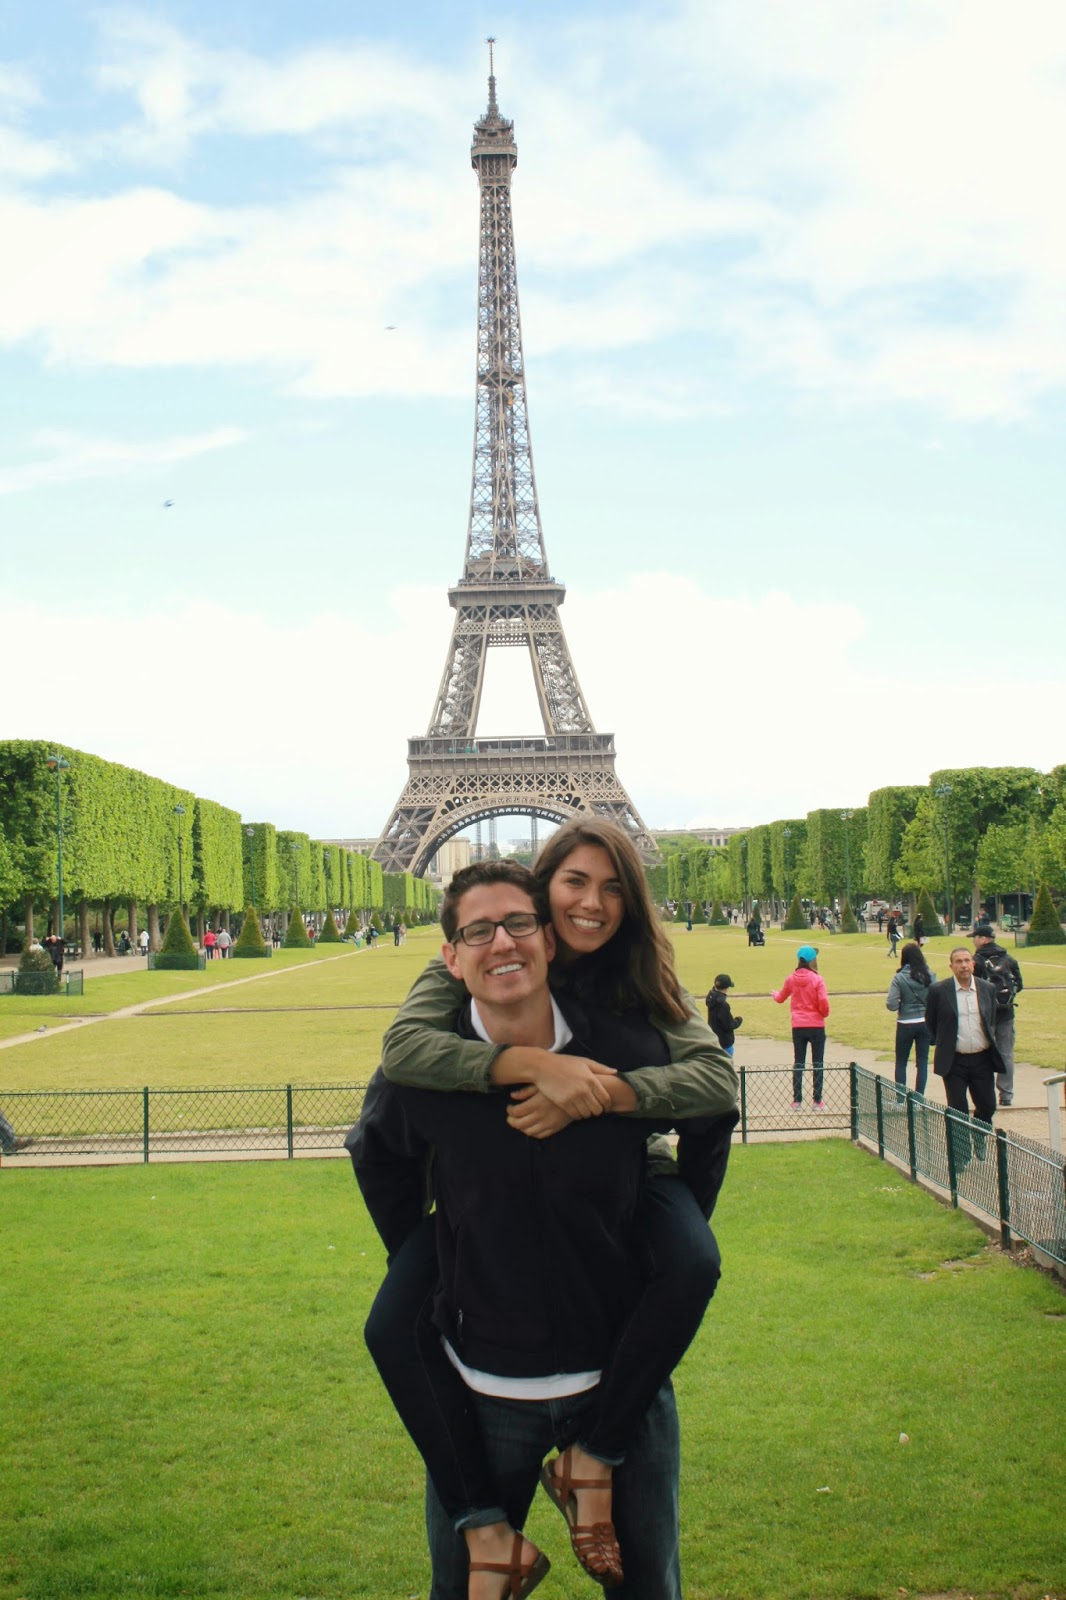 a couple in front of the Eiffel Tower